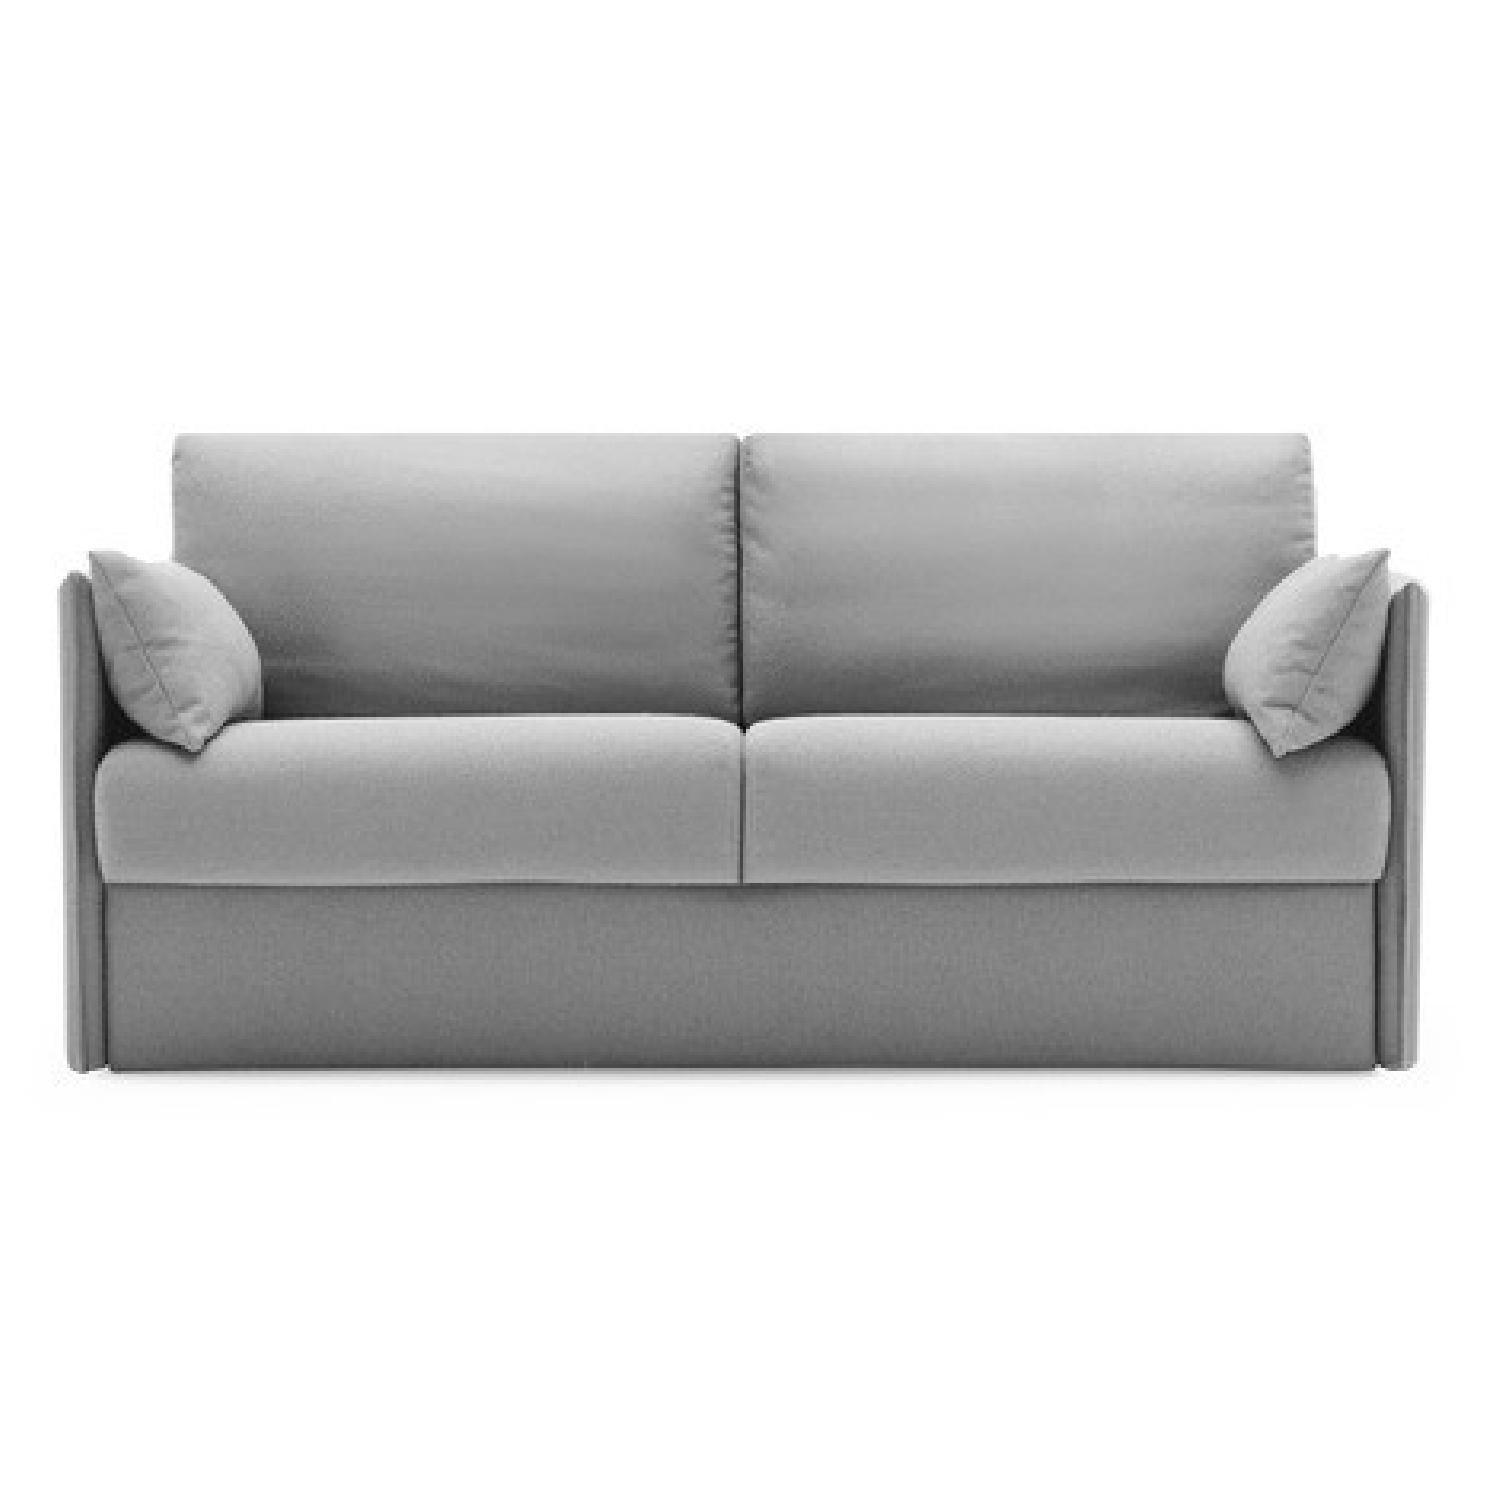 Calligaris Urban Sofa Bed - image-0